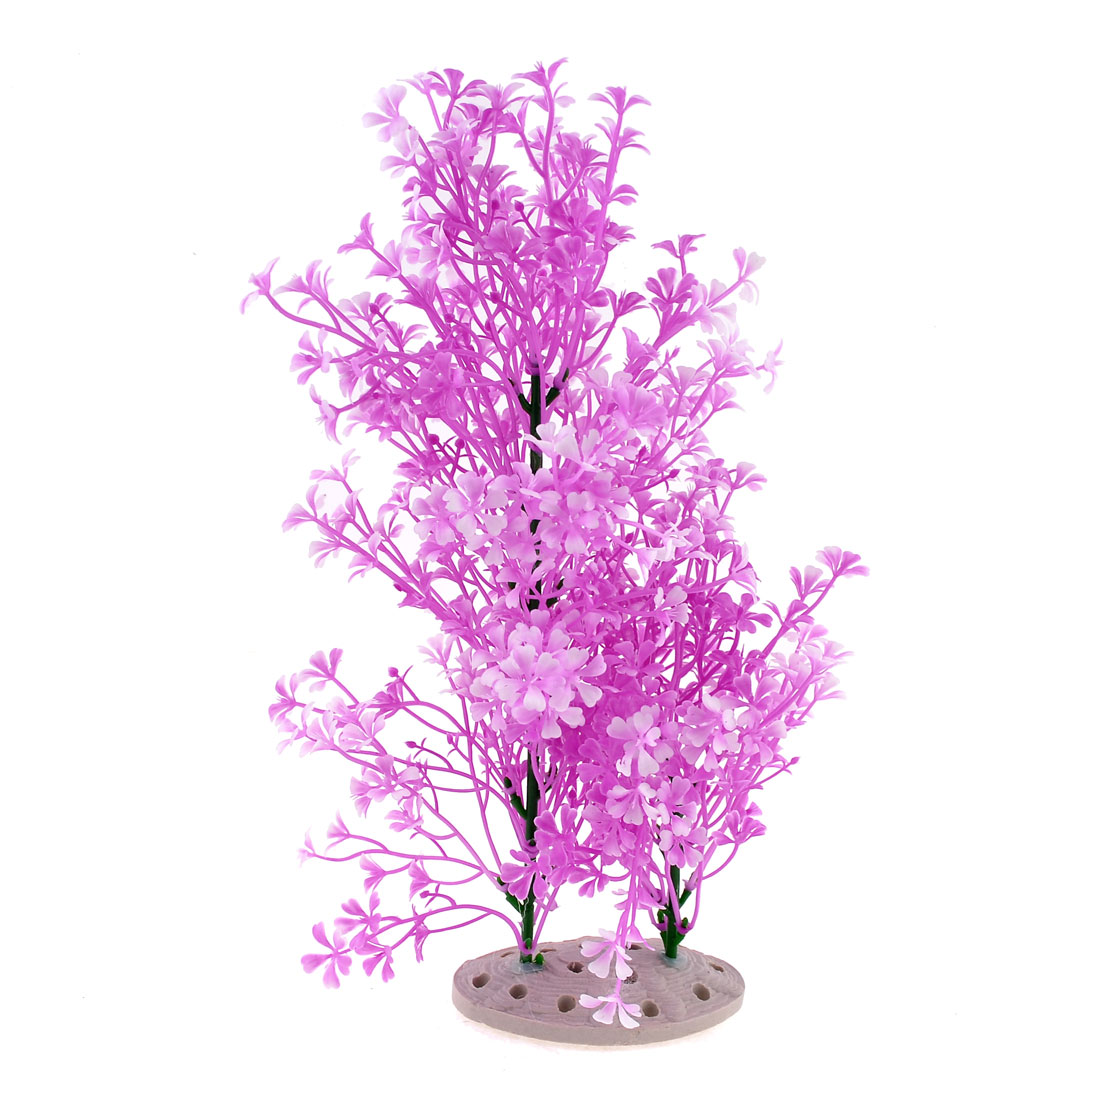 Purpel Plastic Aquarium Aquascaping Ornament Underwater Grass Flower Plant